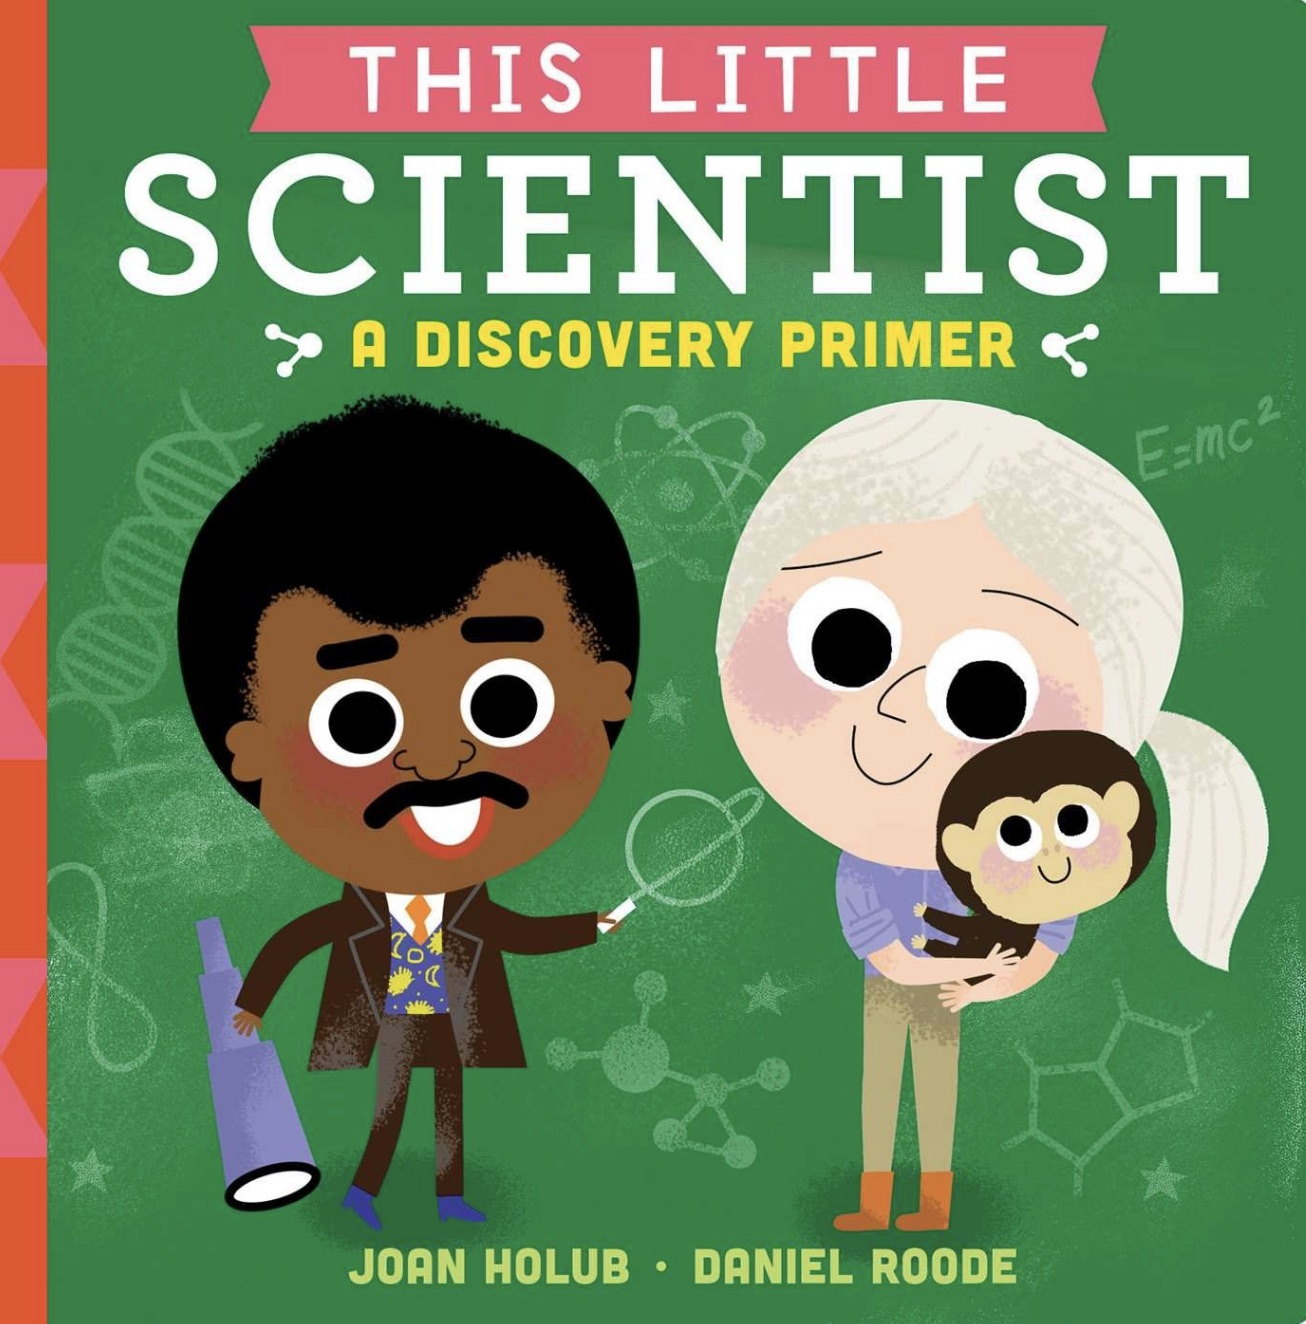 This Little Scientist A Discovery Primer.jpg